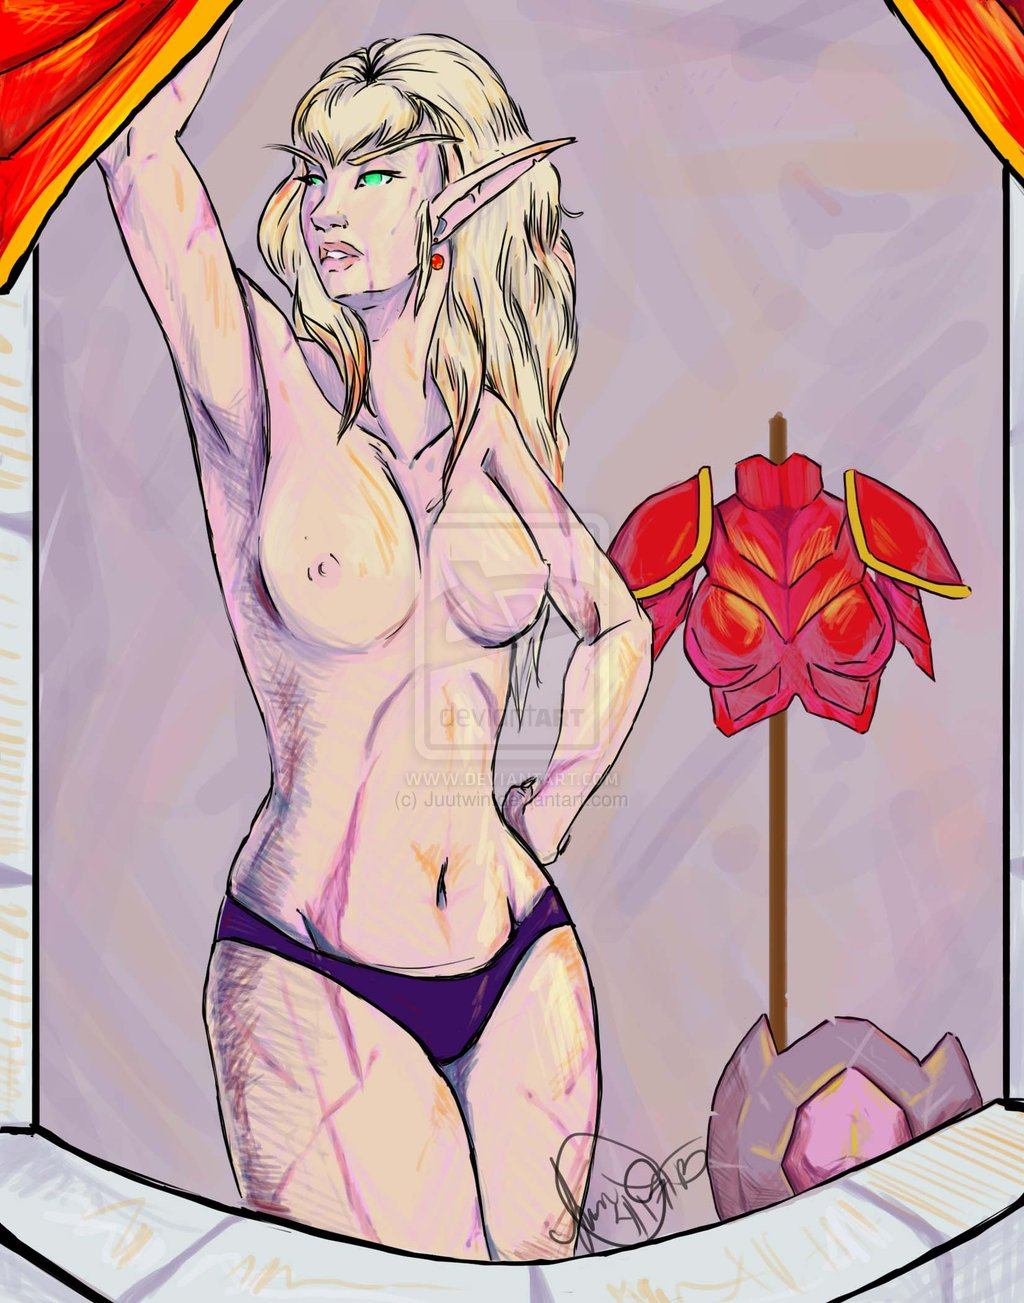 Blood elf rule 34 nsfw comics